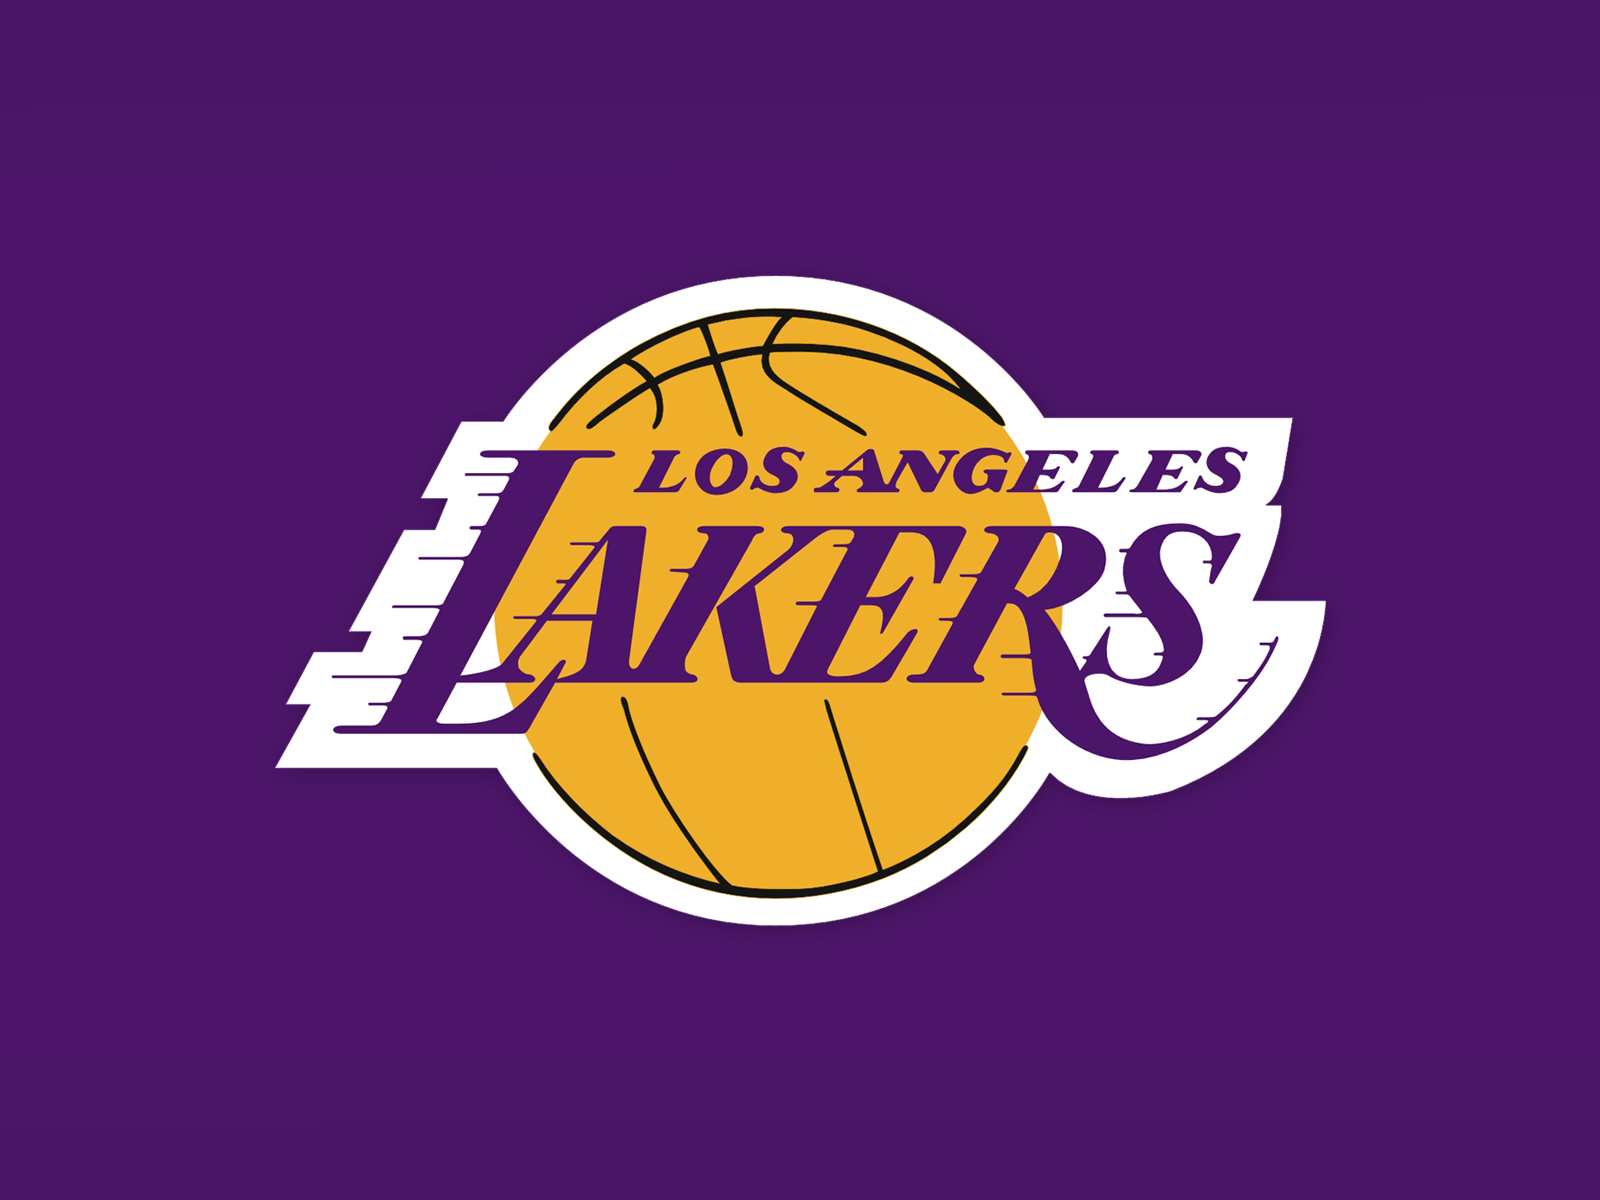 Los Angeles Lakers Team History